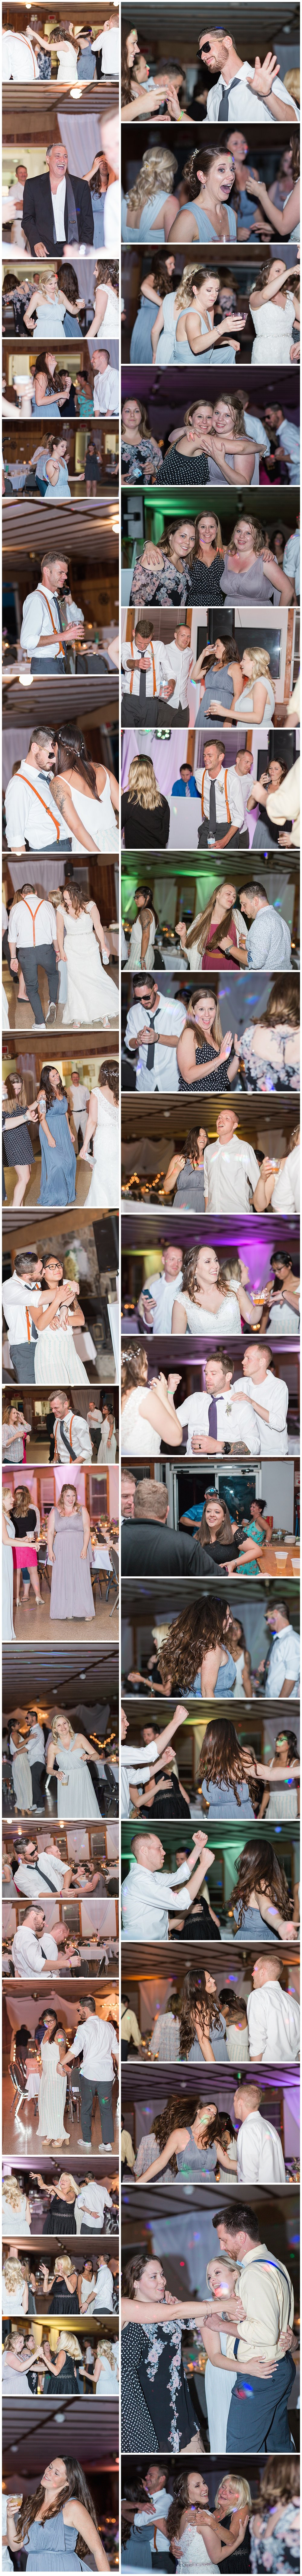 The Martin wedding - Lass & Beau-2164_Buffalo wedding photography.jpg